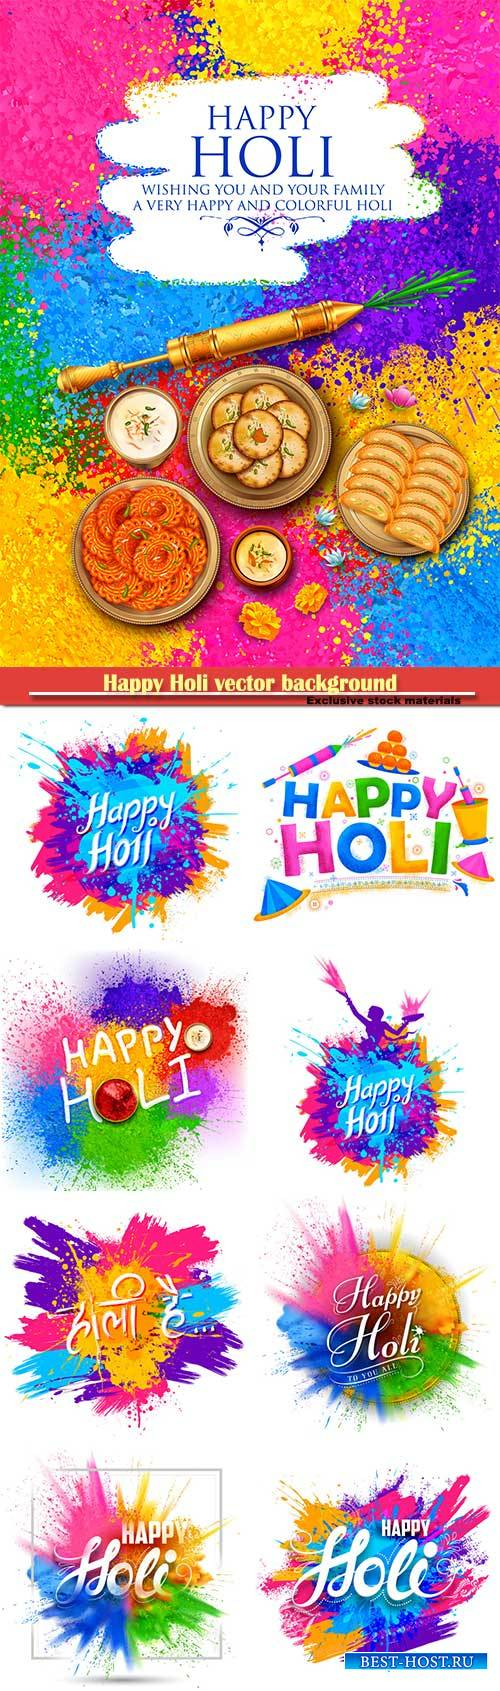 Happy Holi vector background, festival of India celebration greetings card